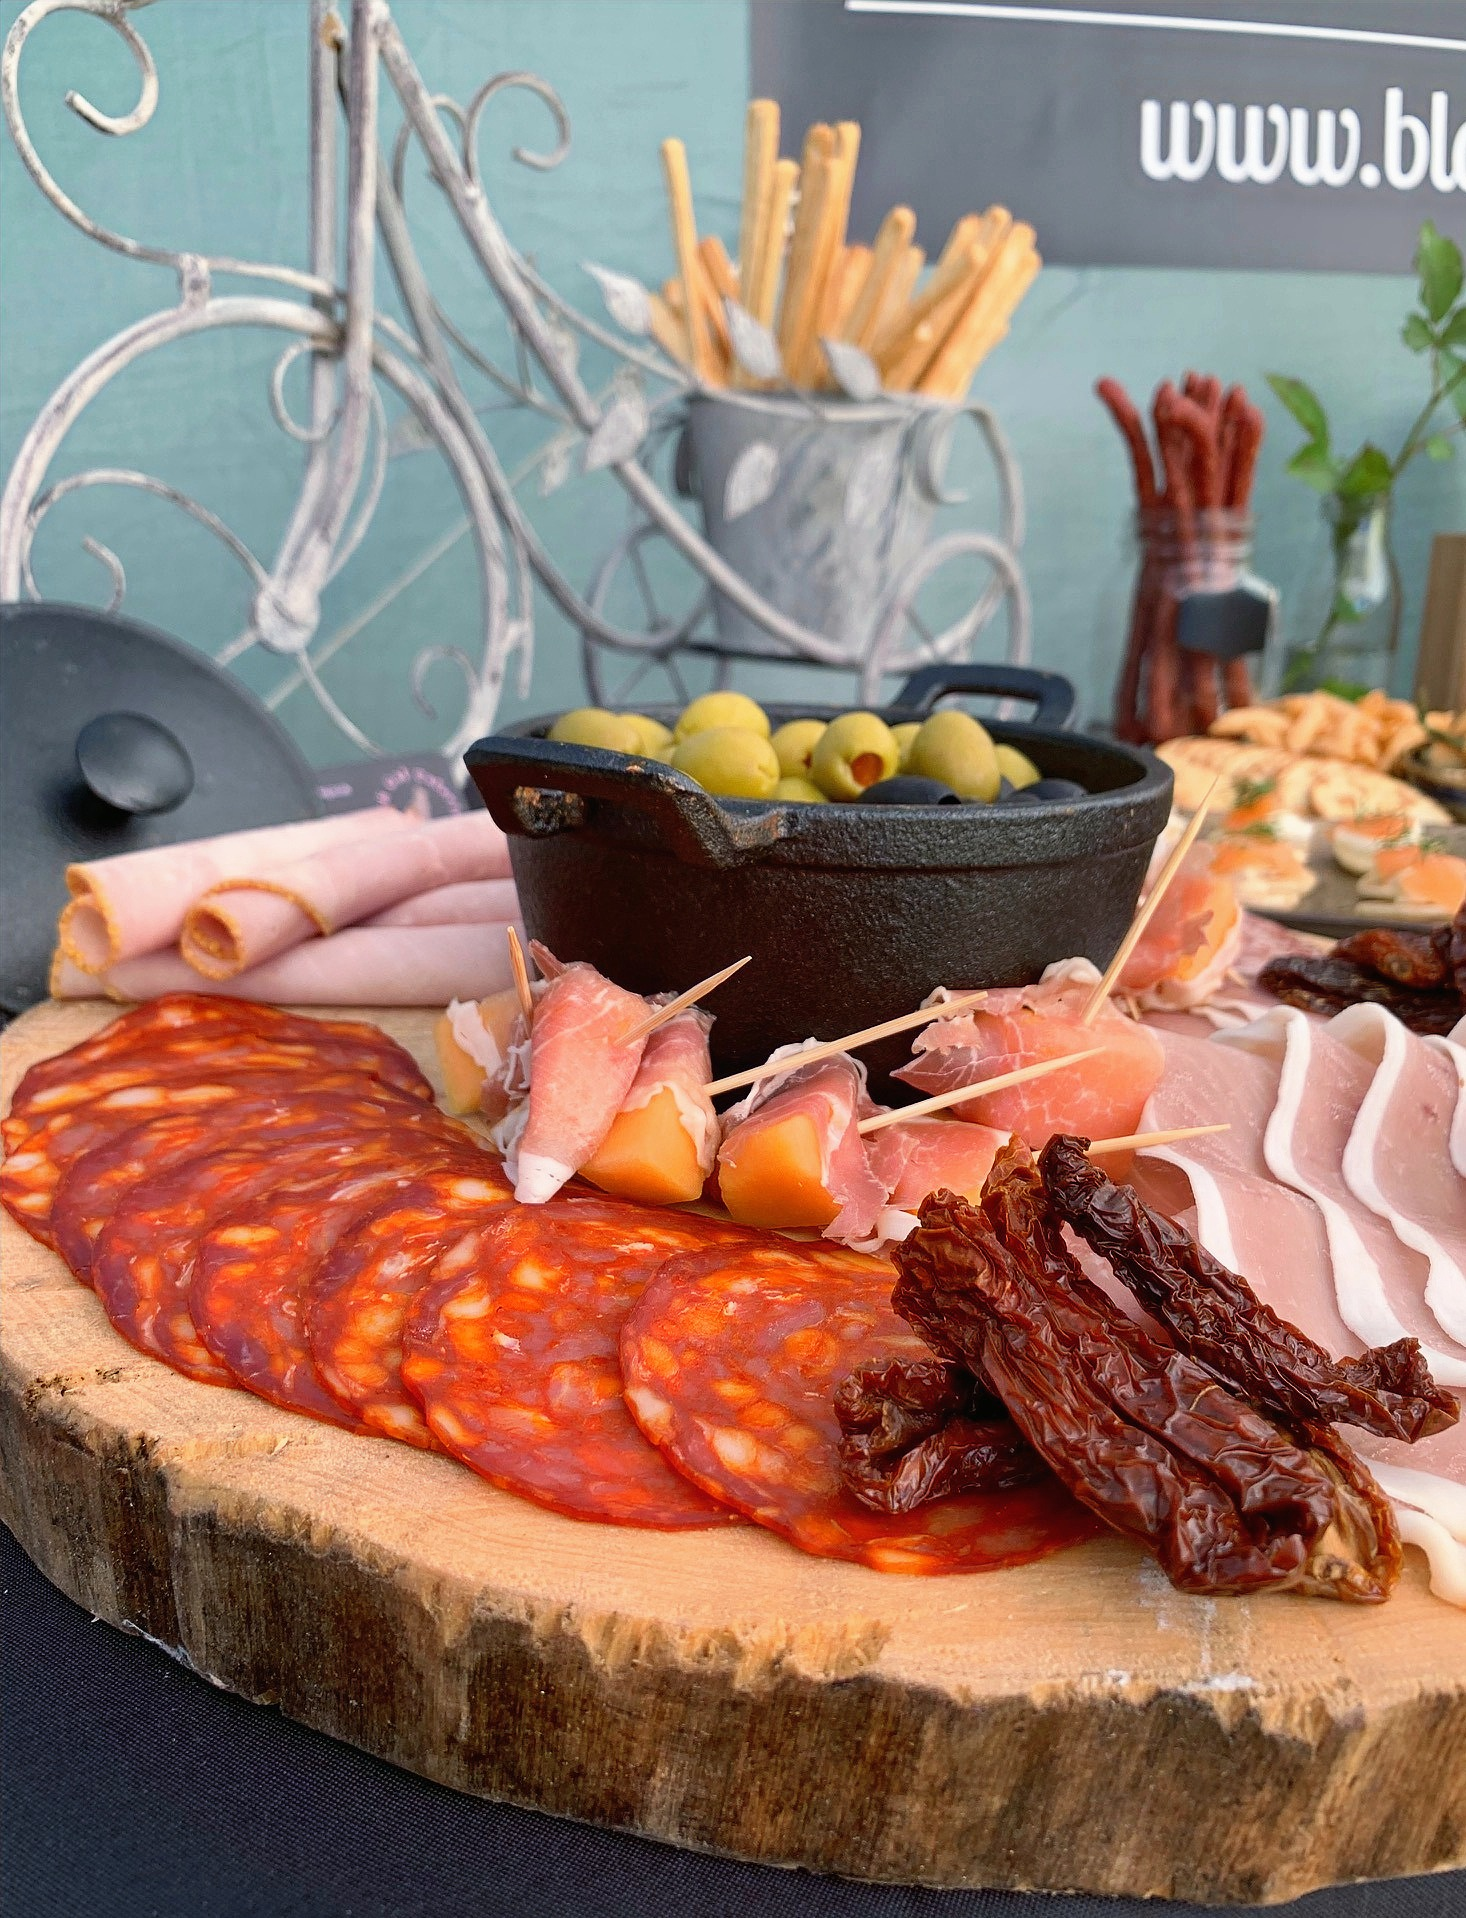 Locally Sourced Meat Platter and Olives